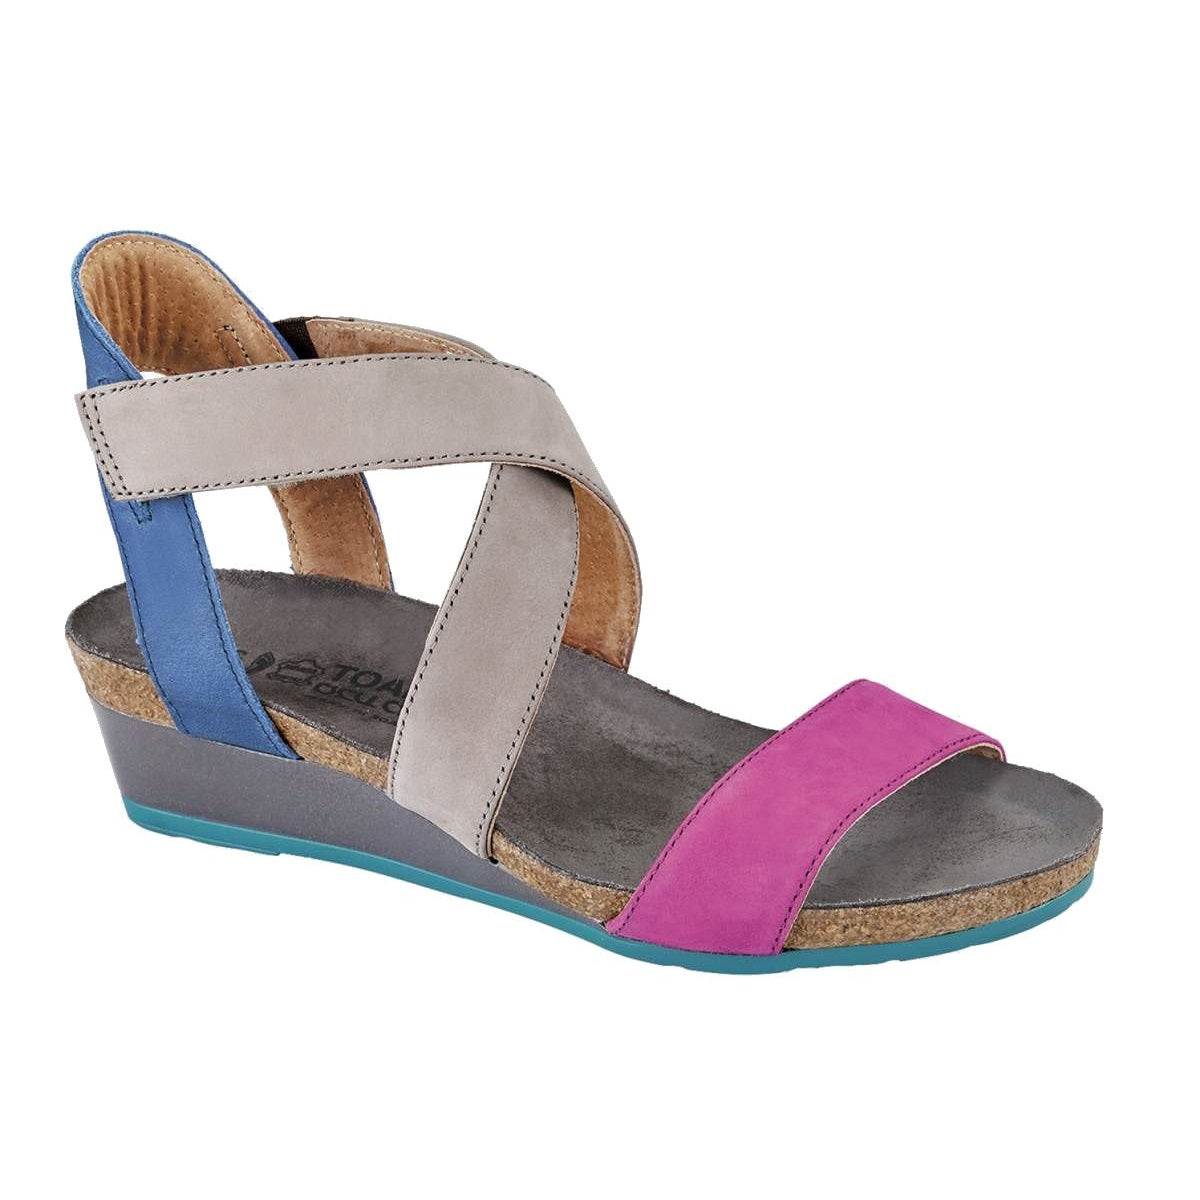 Women's Vixen Wedge Sandal - Pink Plum/Stone/Oily Blue